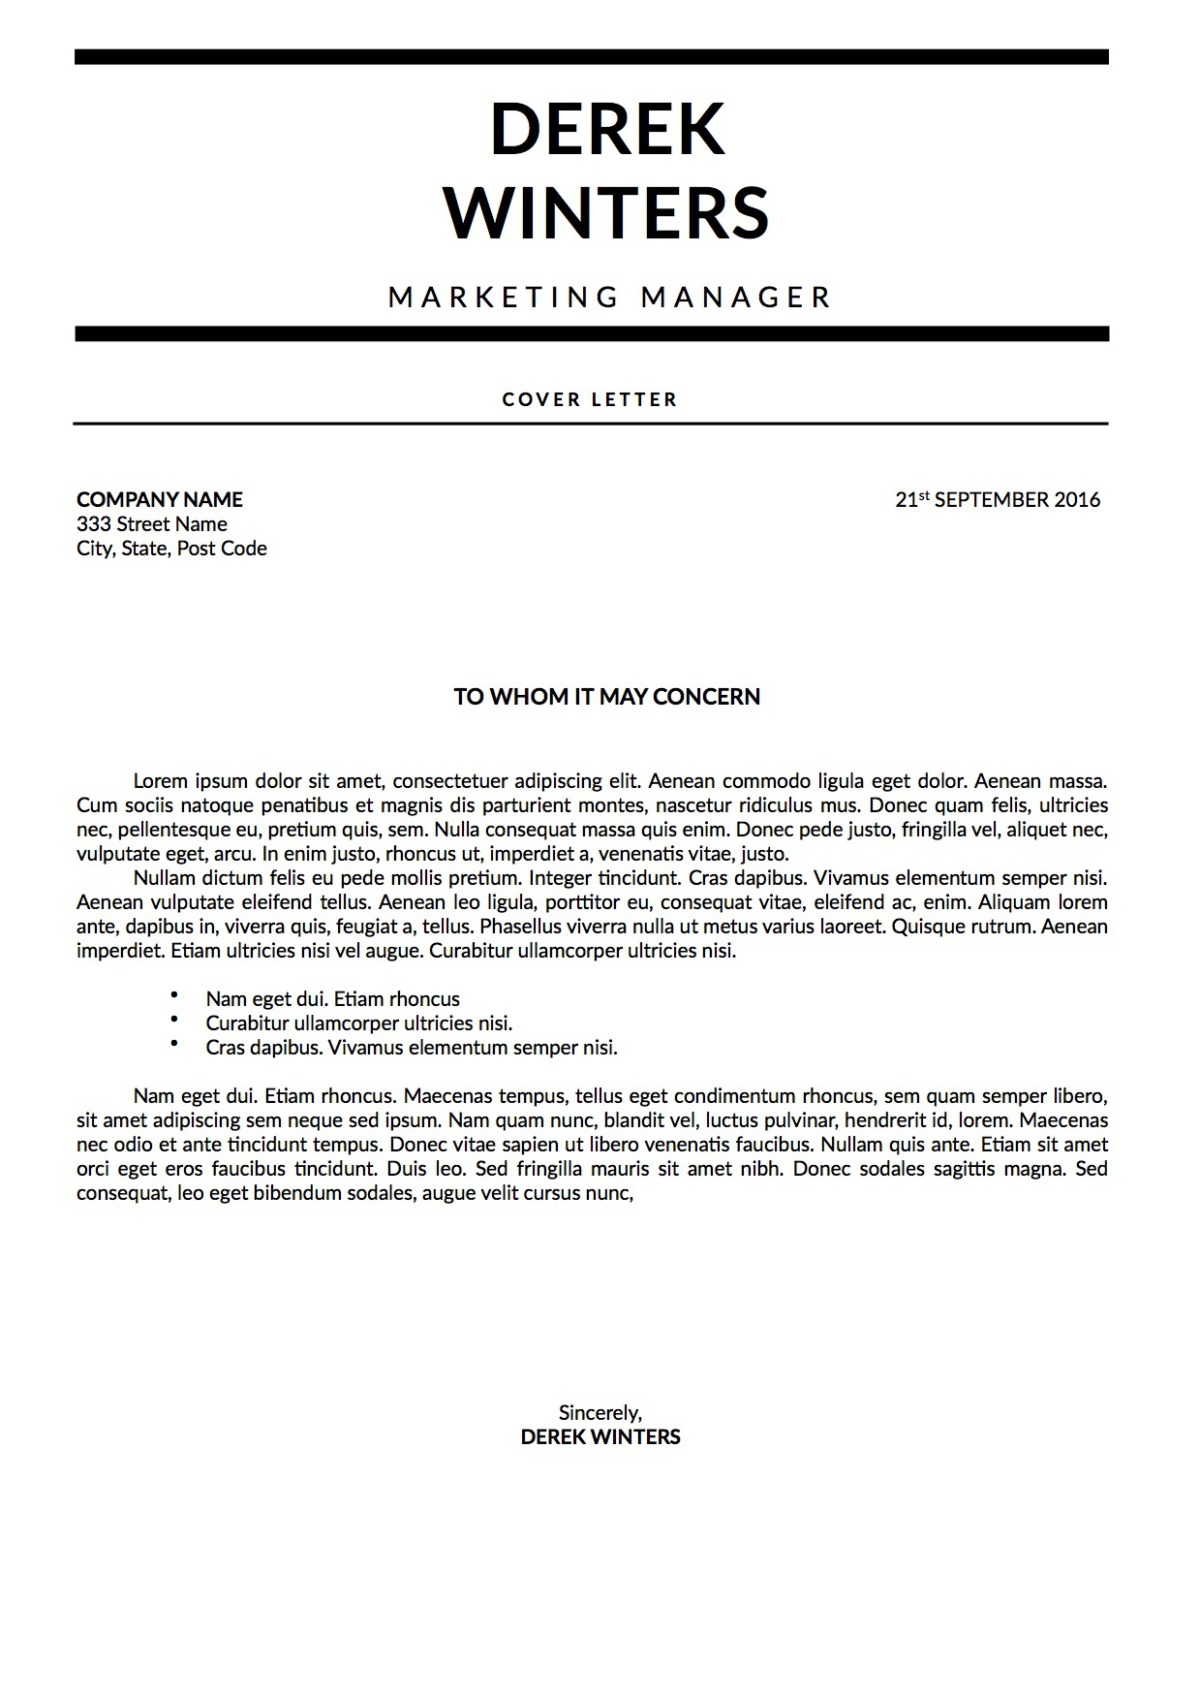 Derek Winters Cover Letter Monochrome Template